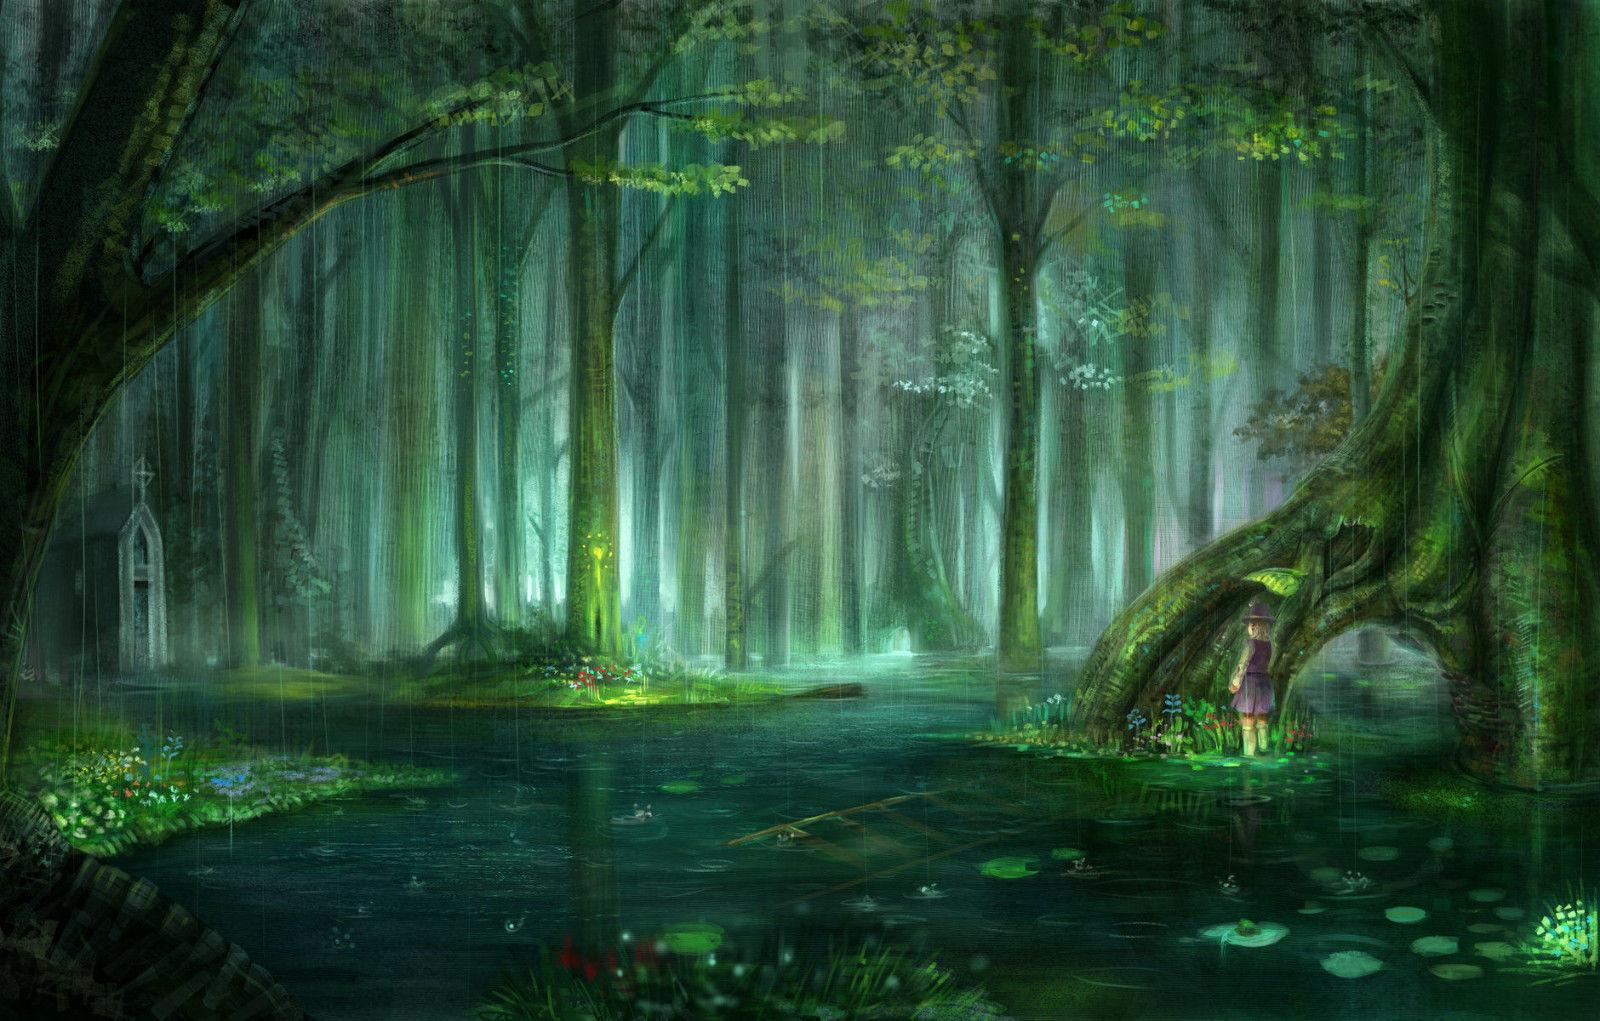 Enchanted Fairy Tale Forest Art Silk Print Poster